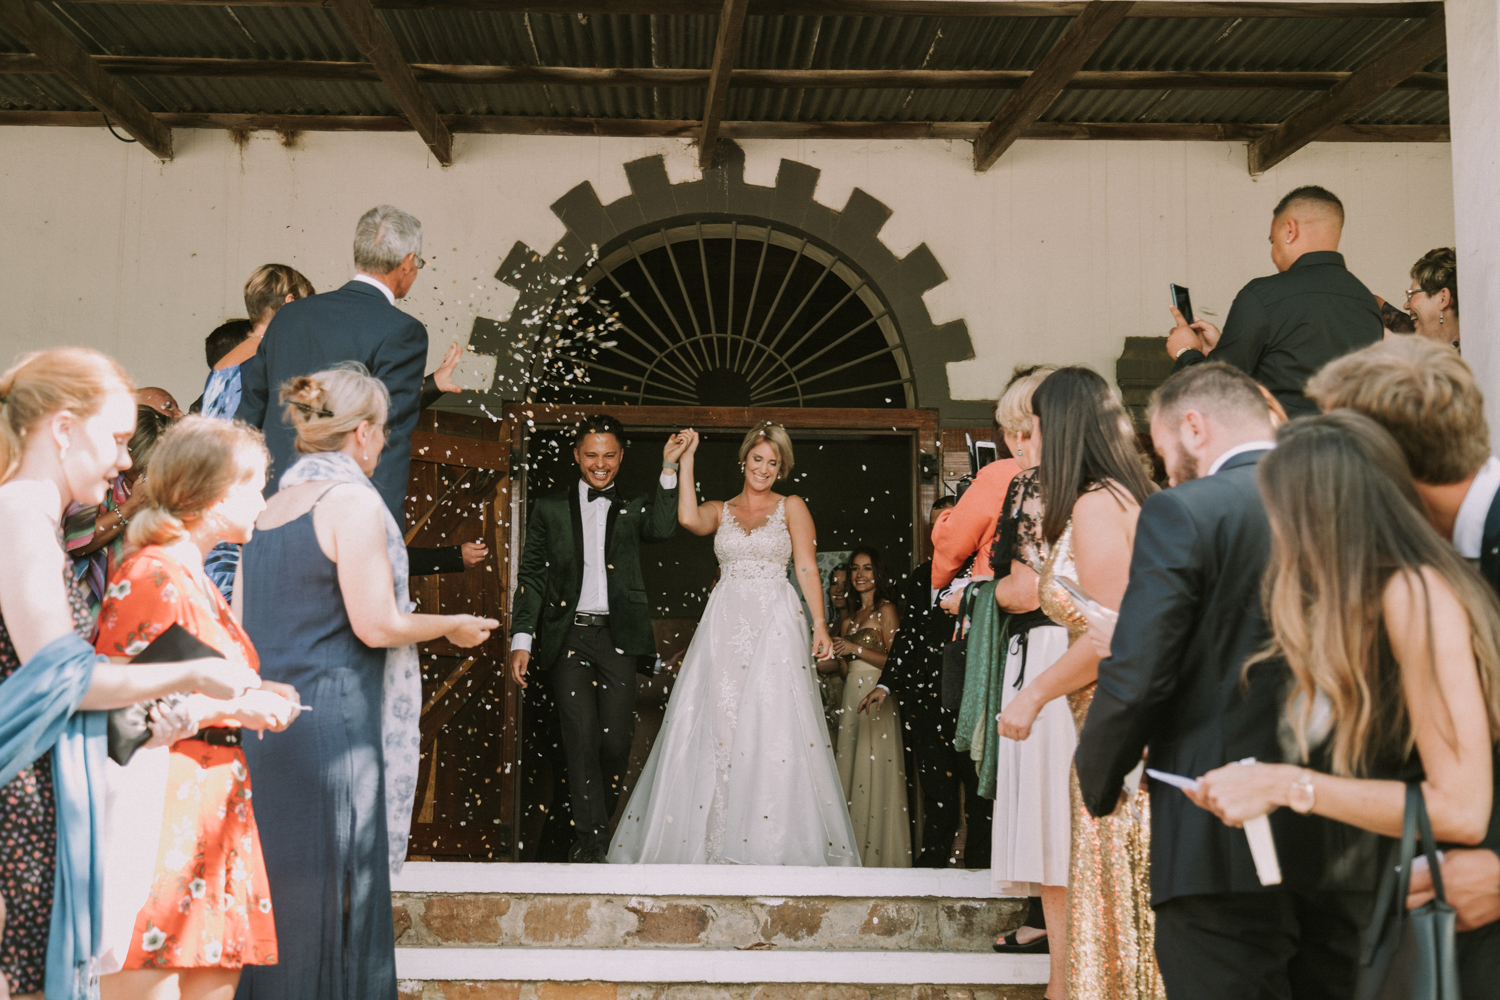 Elegant Country Wedding Cape Town - Bianca Asher Photography-53.jpg